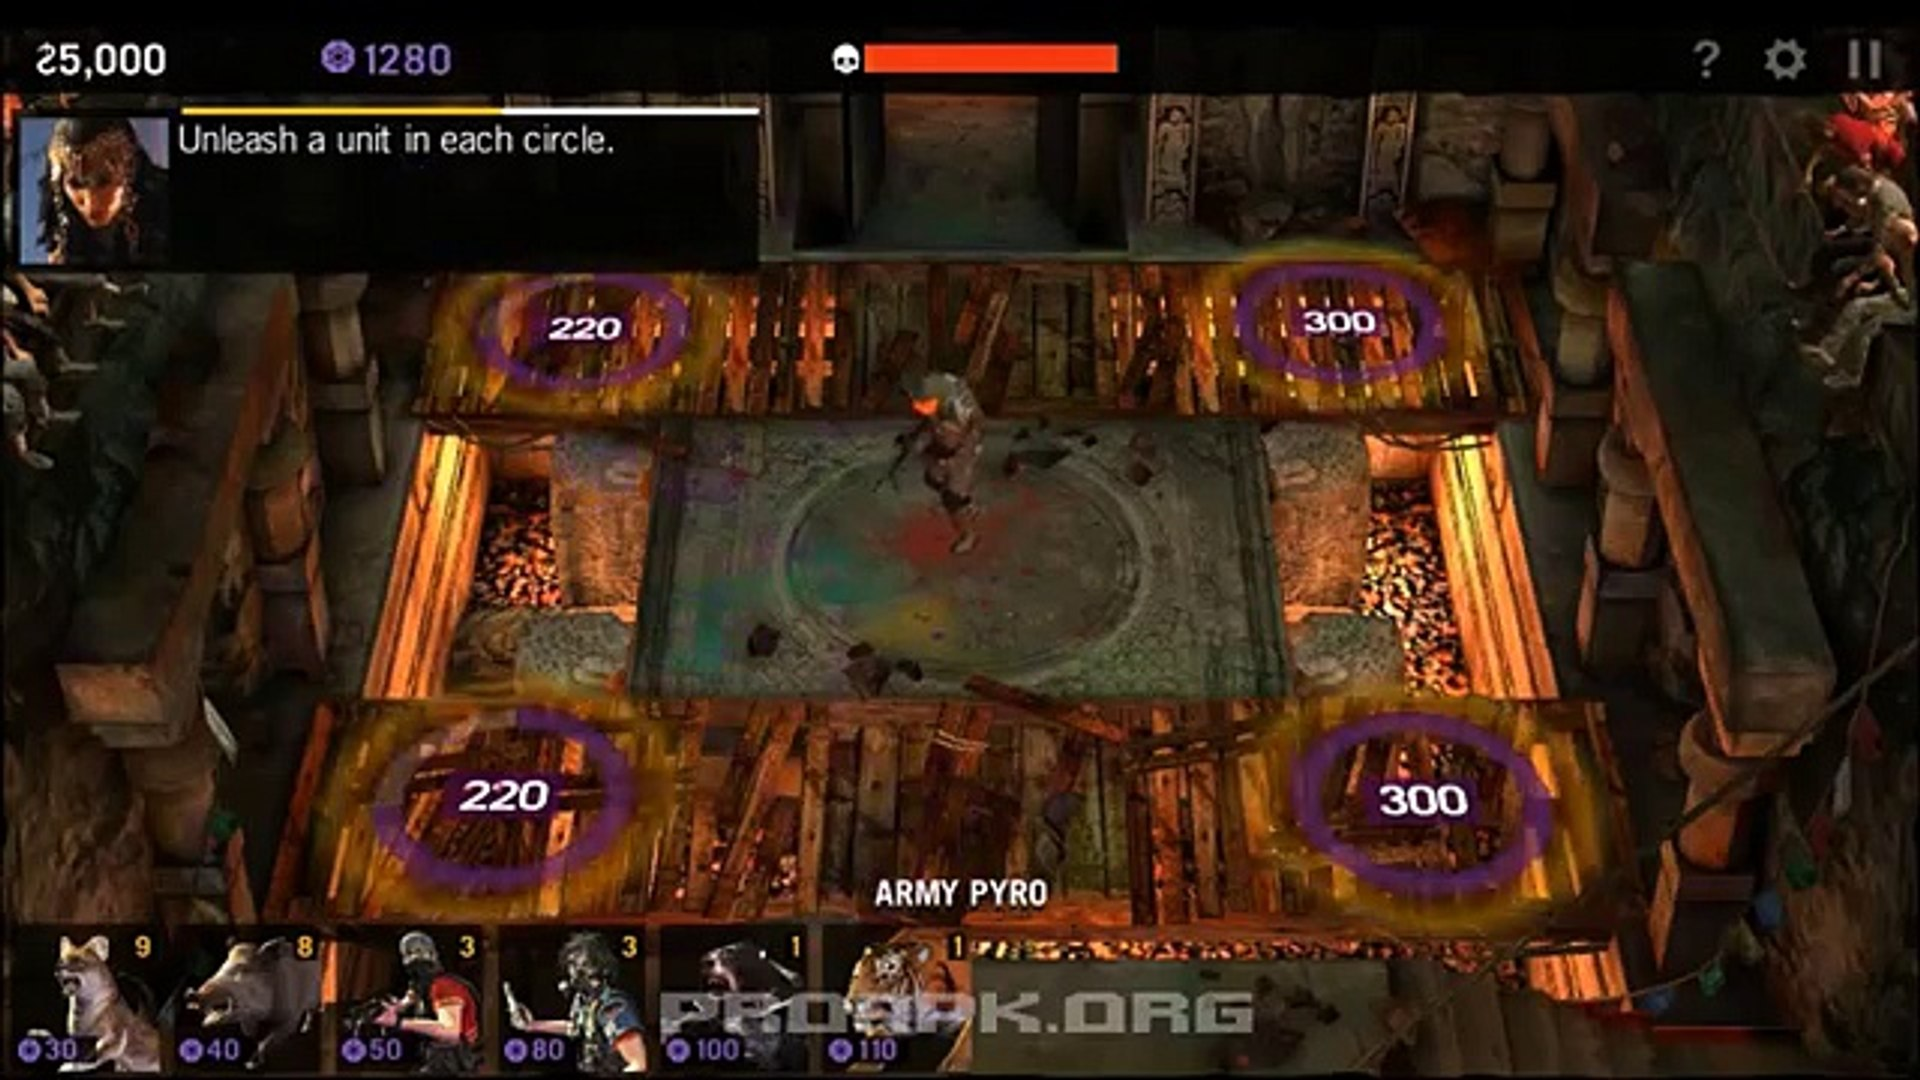 [HD] Far Cry 4 Arena Master Gameplay (IOS/Android) | ProAPK